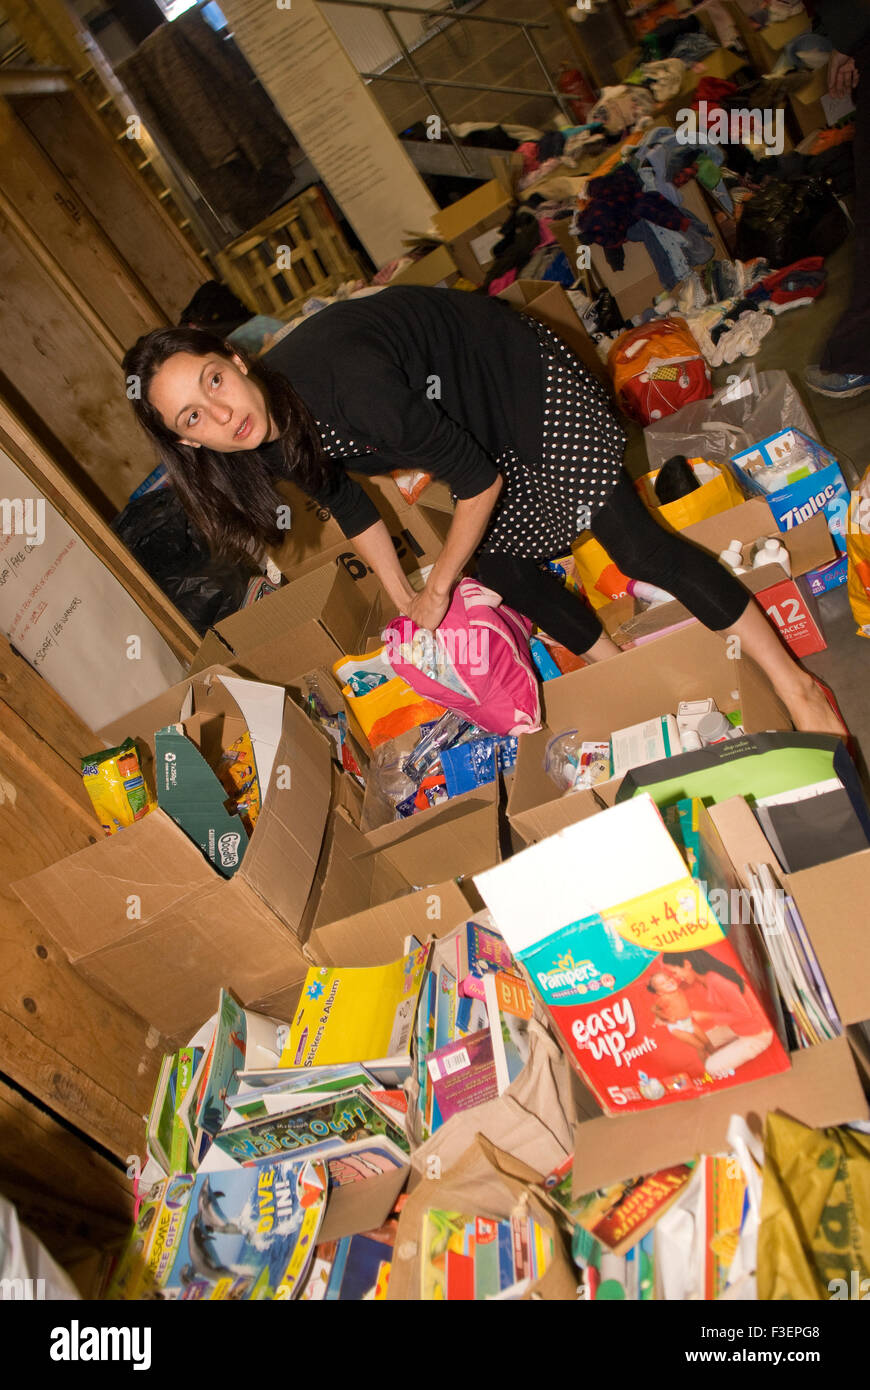 Volunteer in a shipping company's warehouse packing up donated items of clothing and other non-perishable items - Stock Image